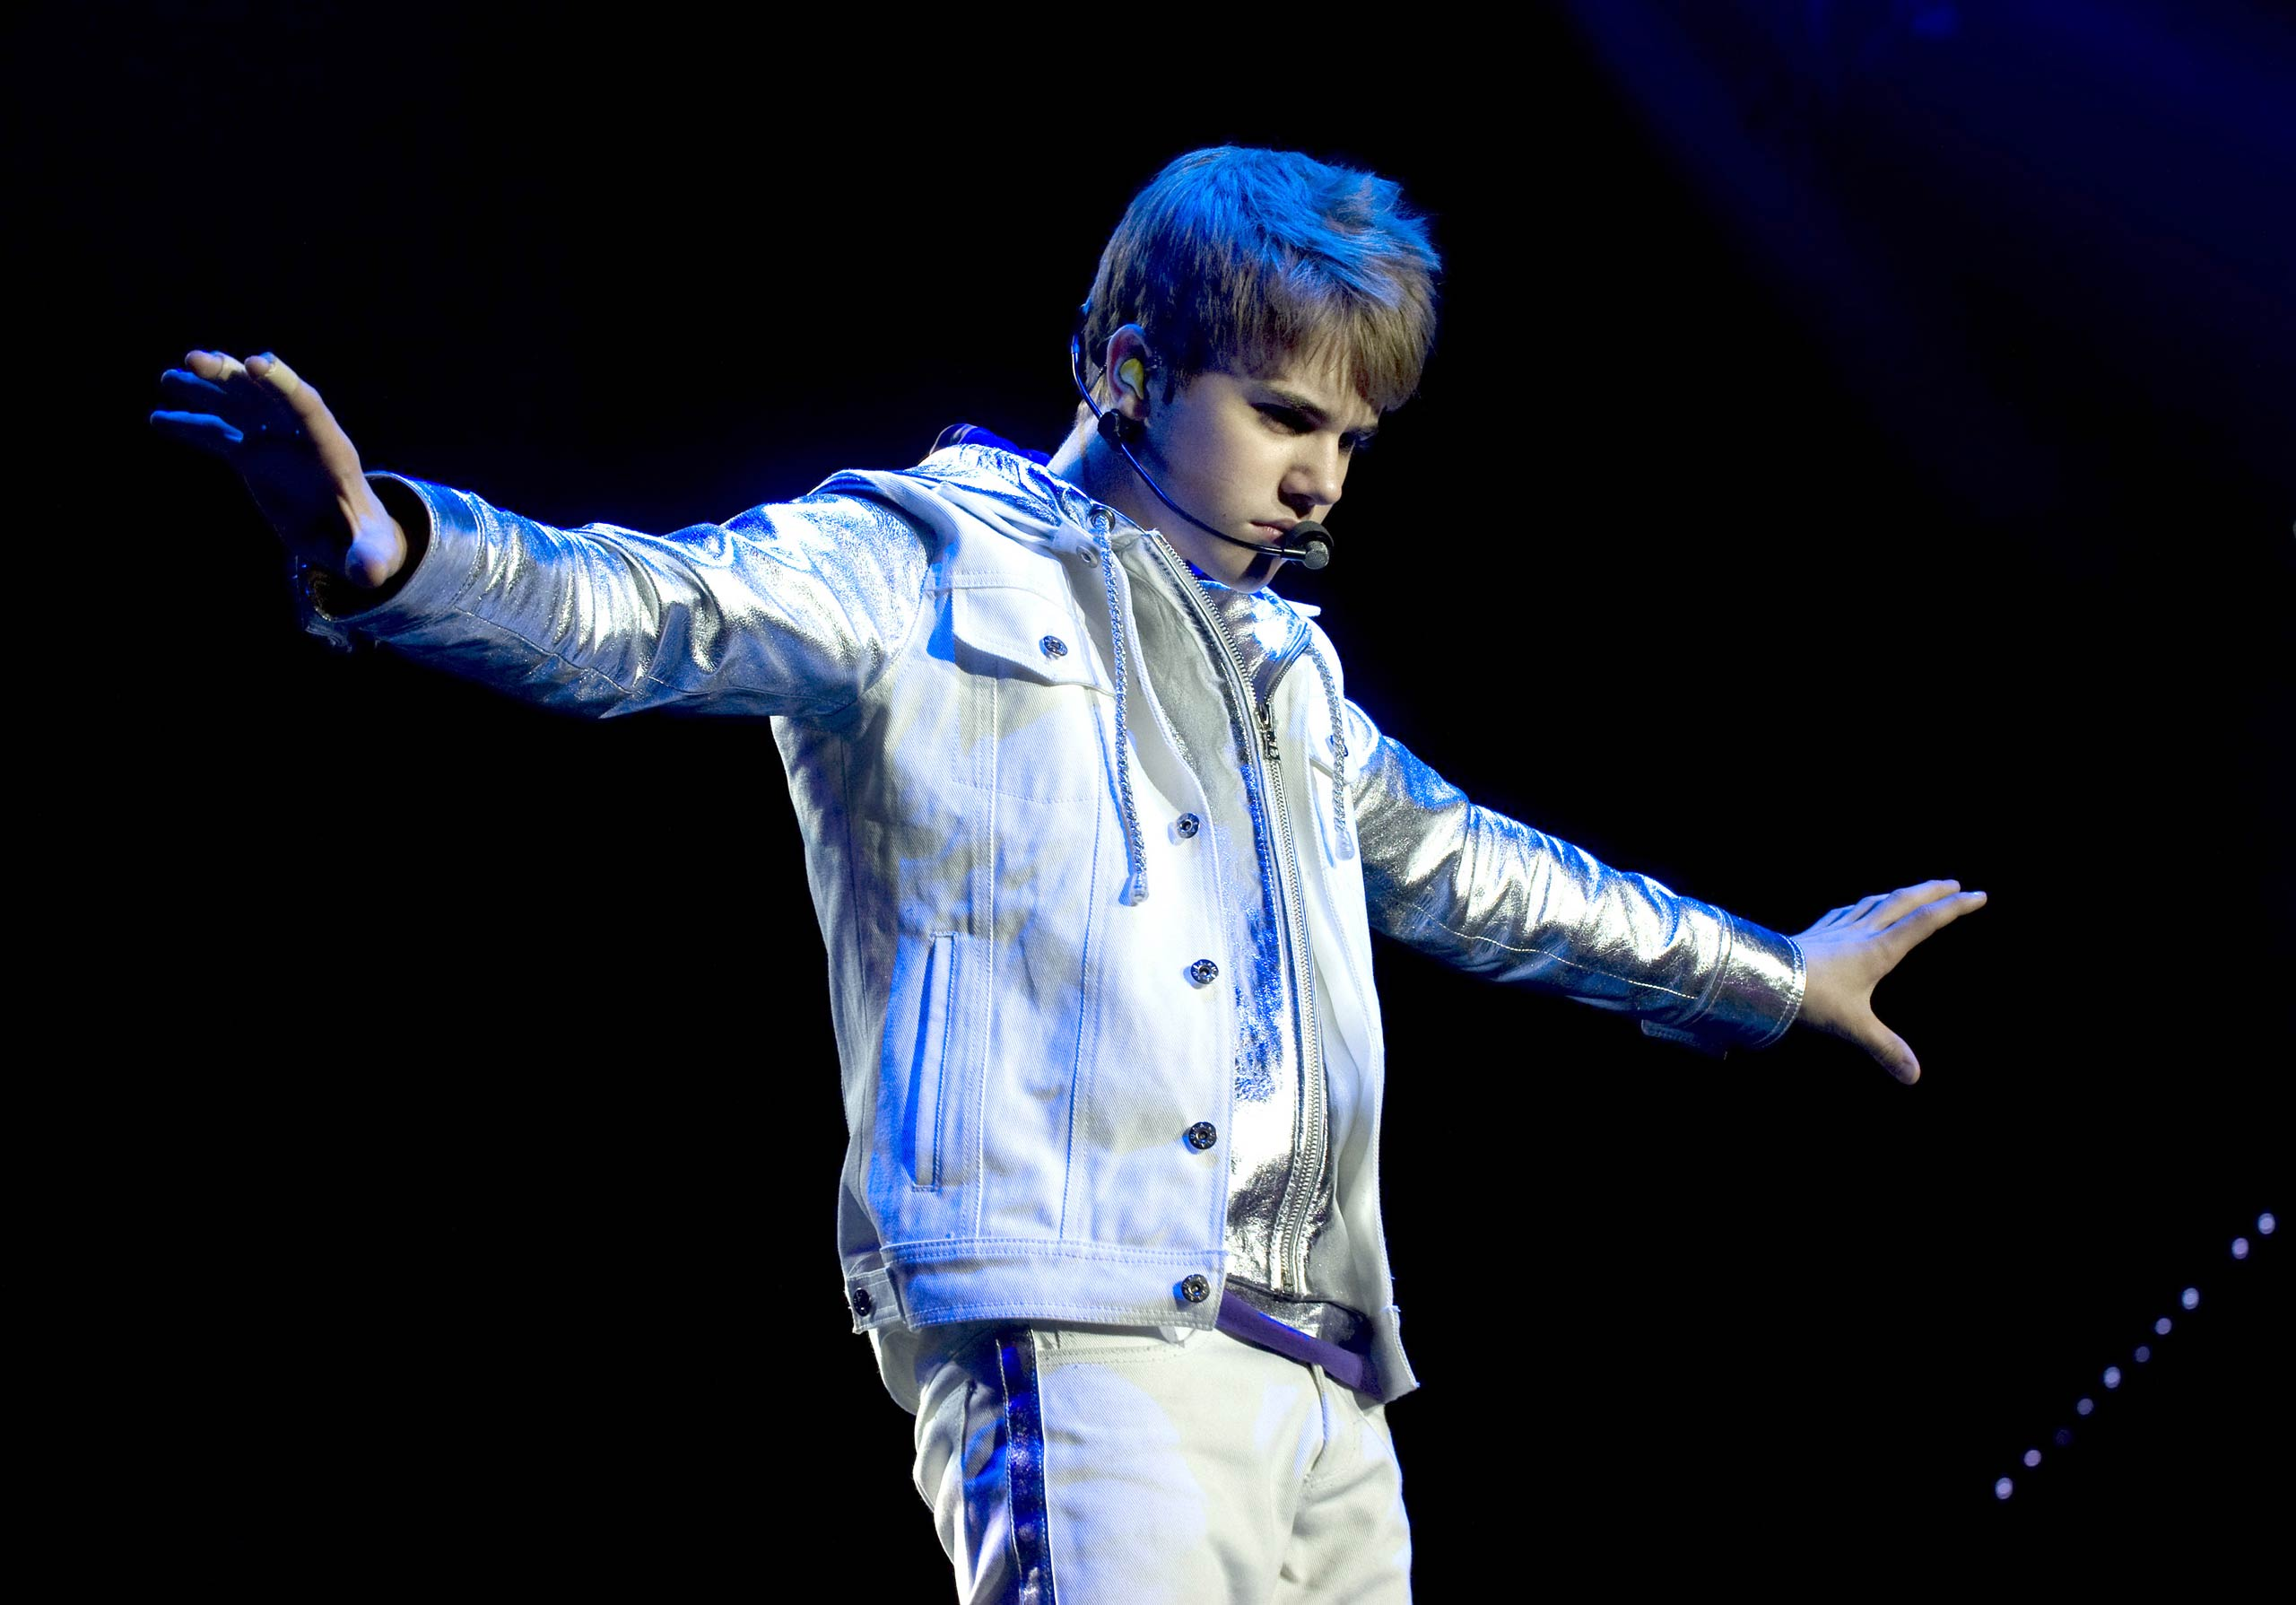 Justin Bieber performs on stage at Ahoy in Rotterdam, Netherlands in 2011.